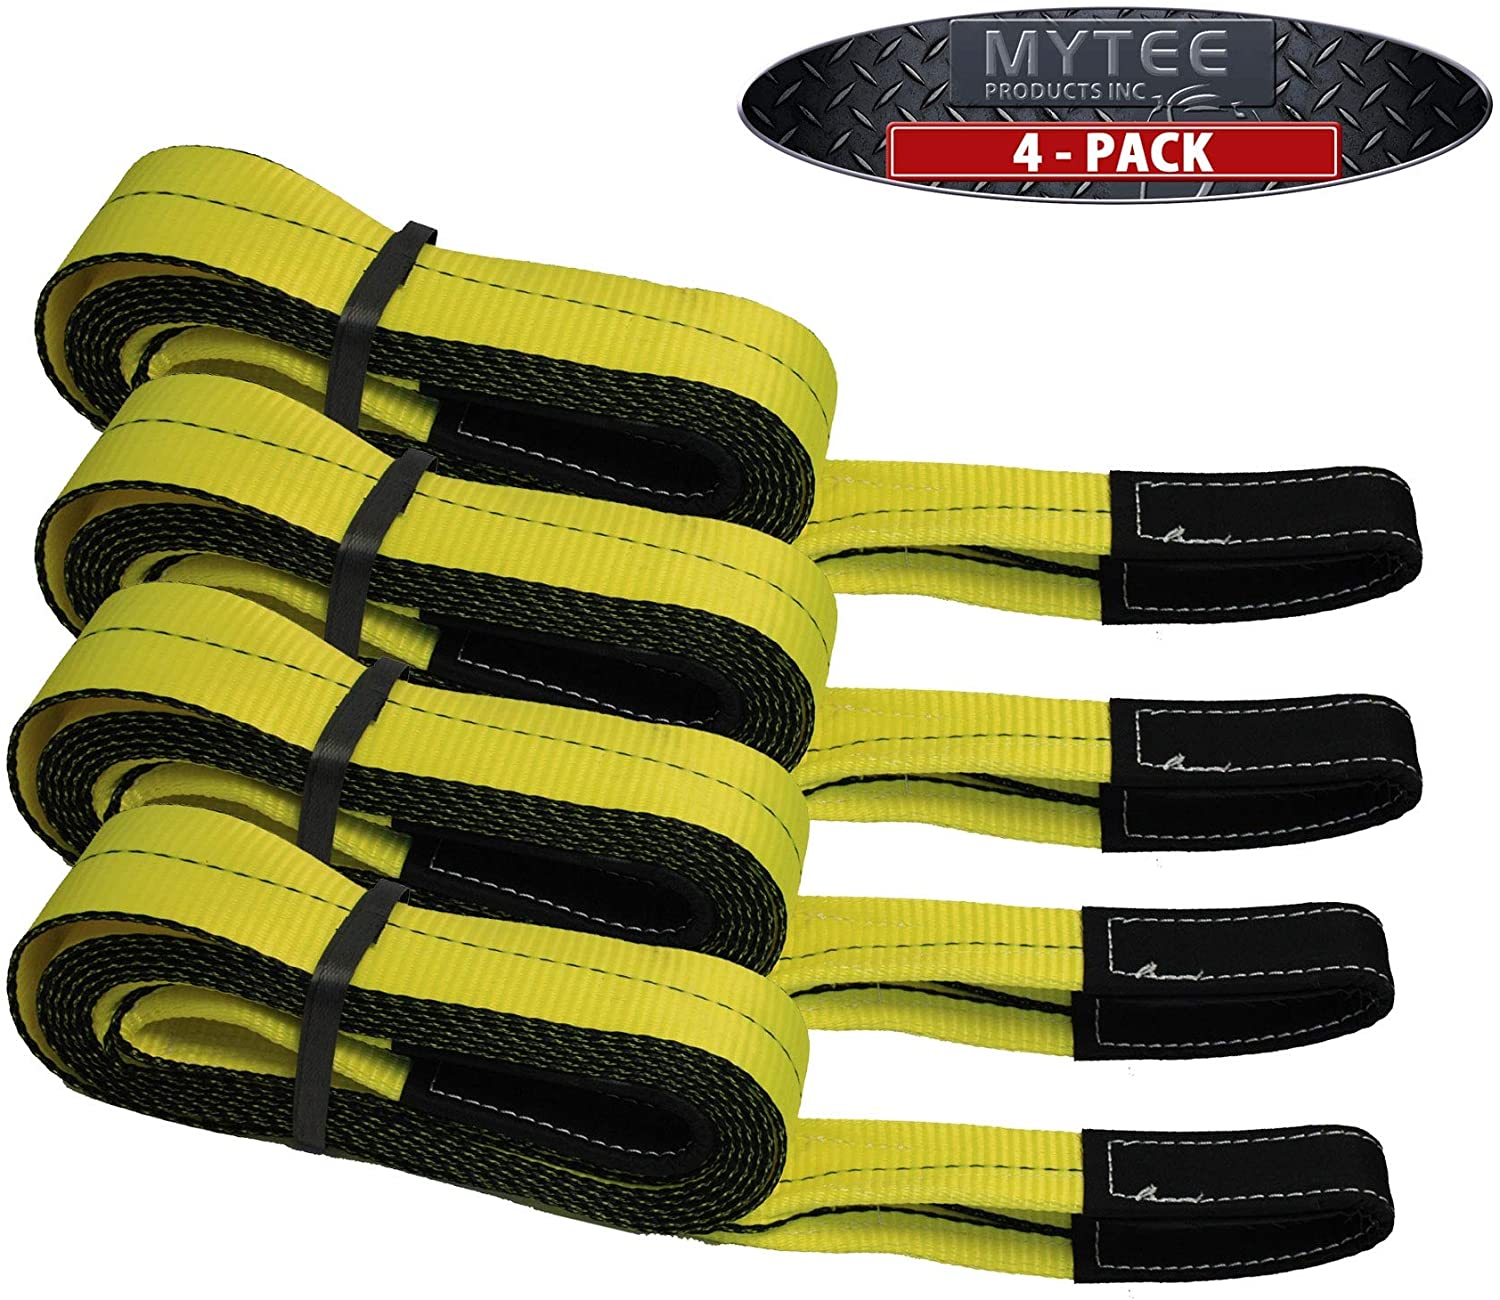 Mytee Products (4 Pack) Heavy Duty Tow Strap 4 X 20 Recovery Rescue 32000 LB Break Strength Towing